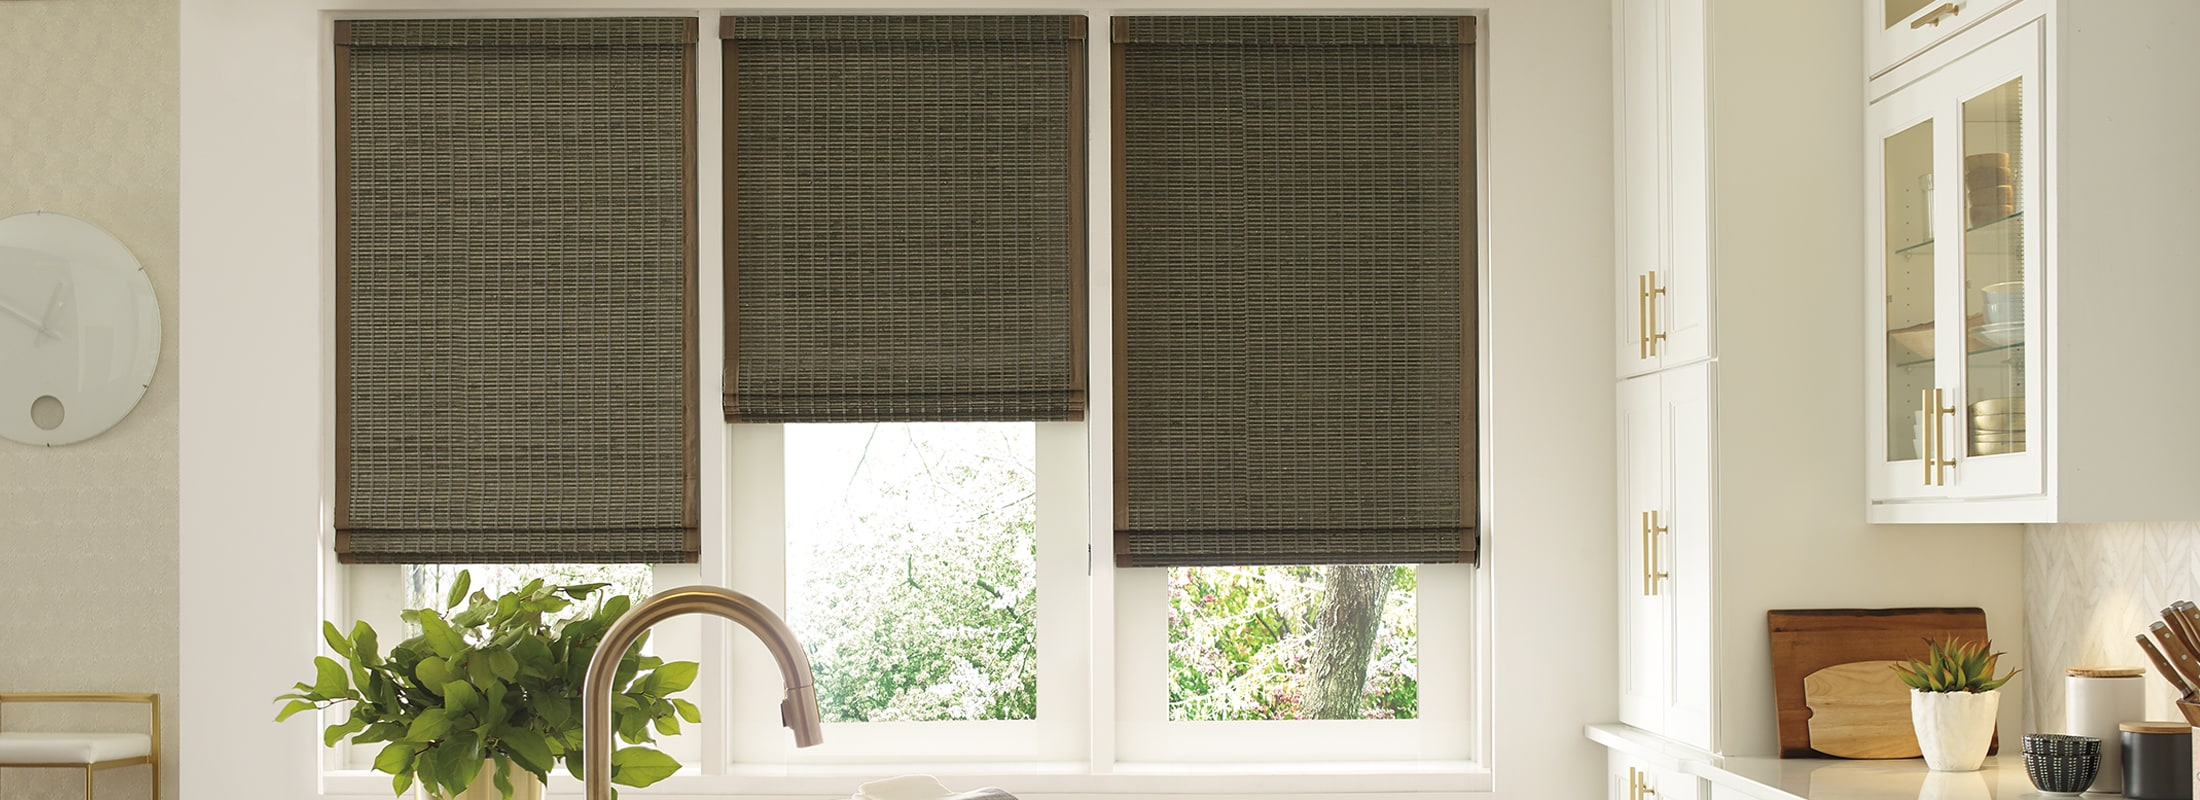 Bamboo blinds in Mindanao Graphite - Provenance